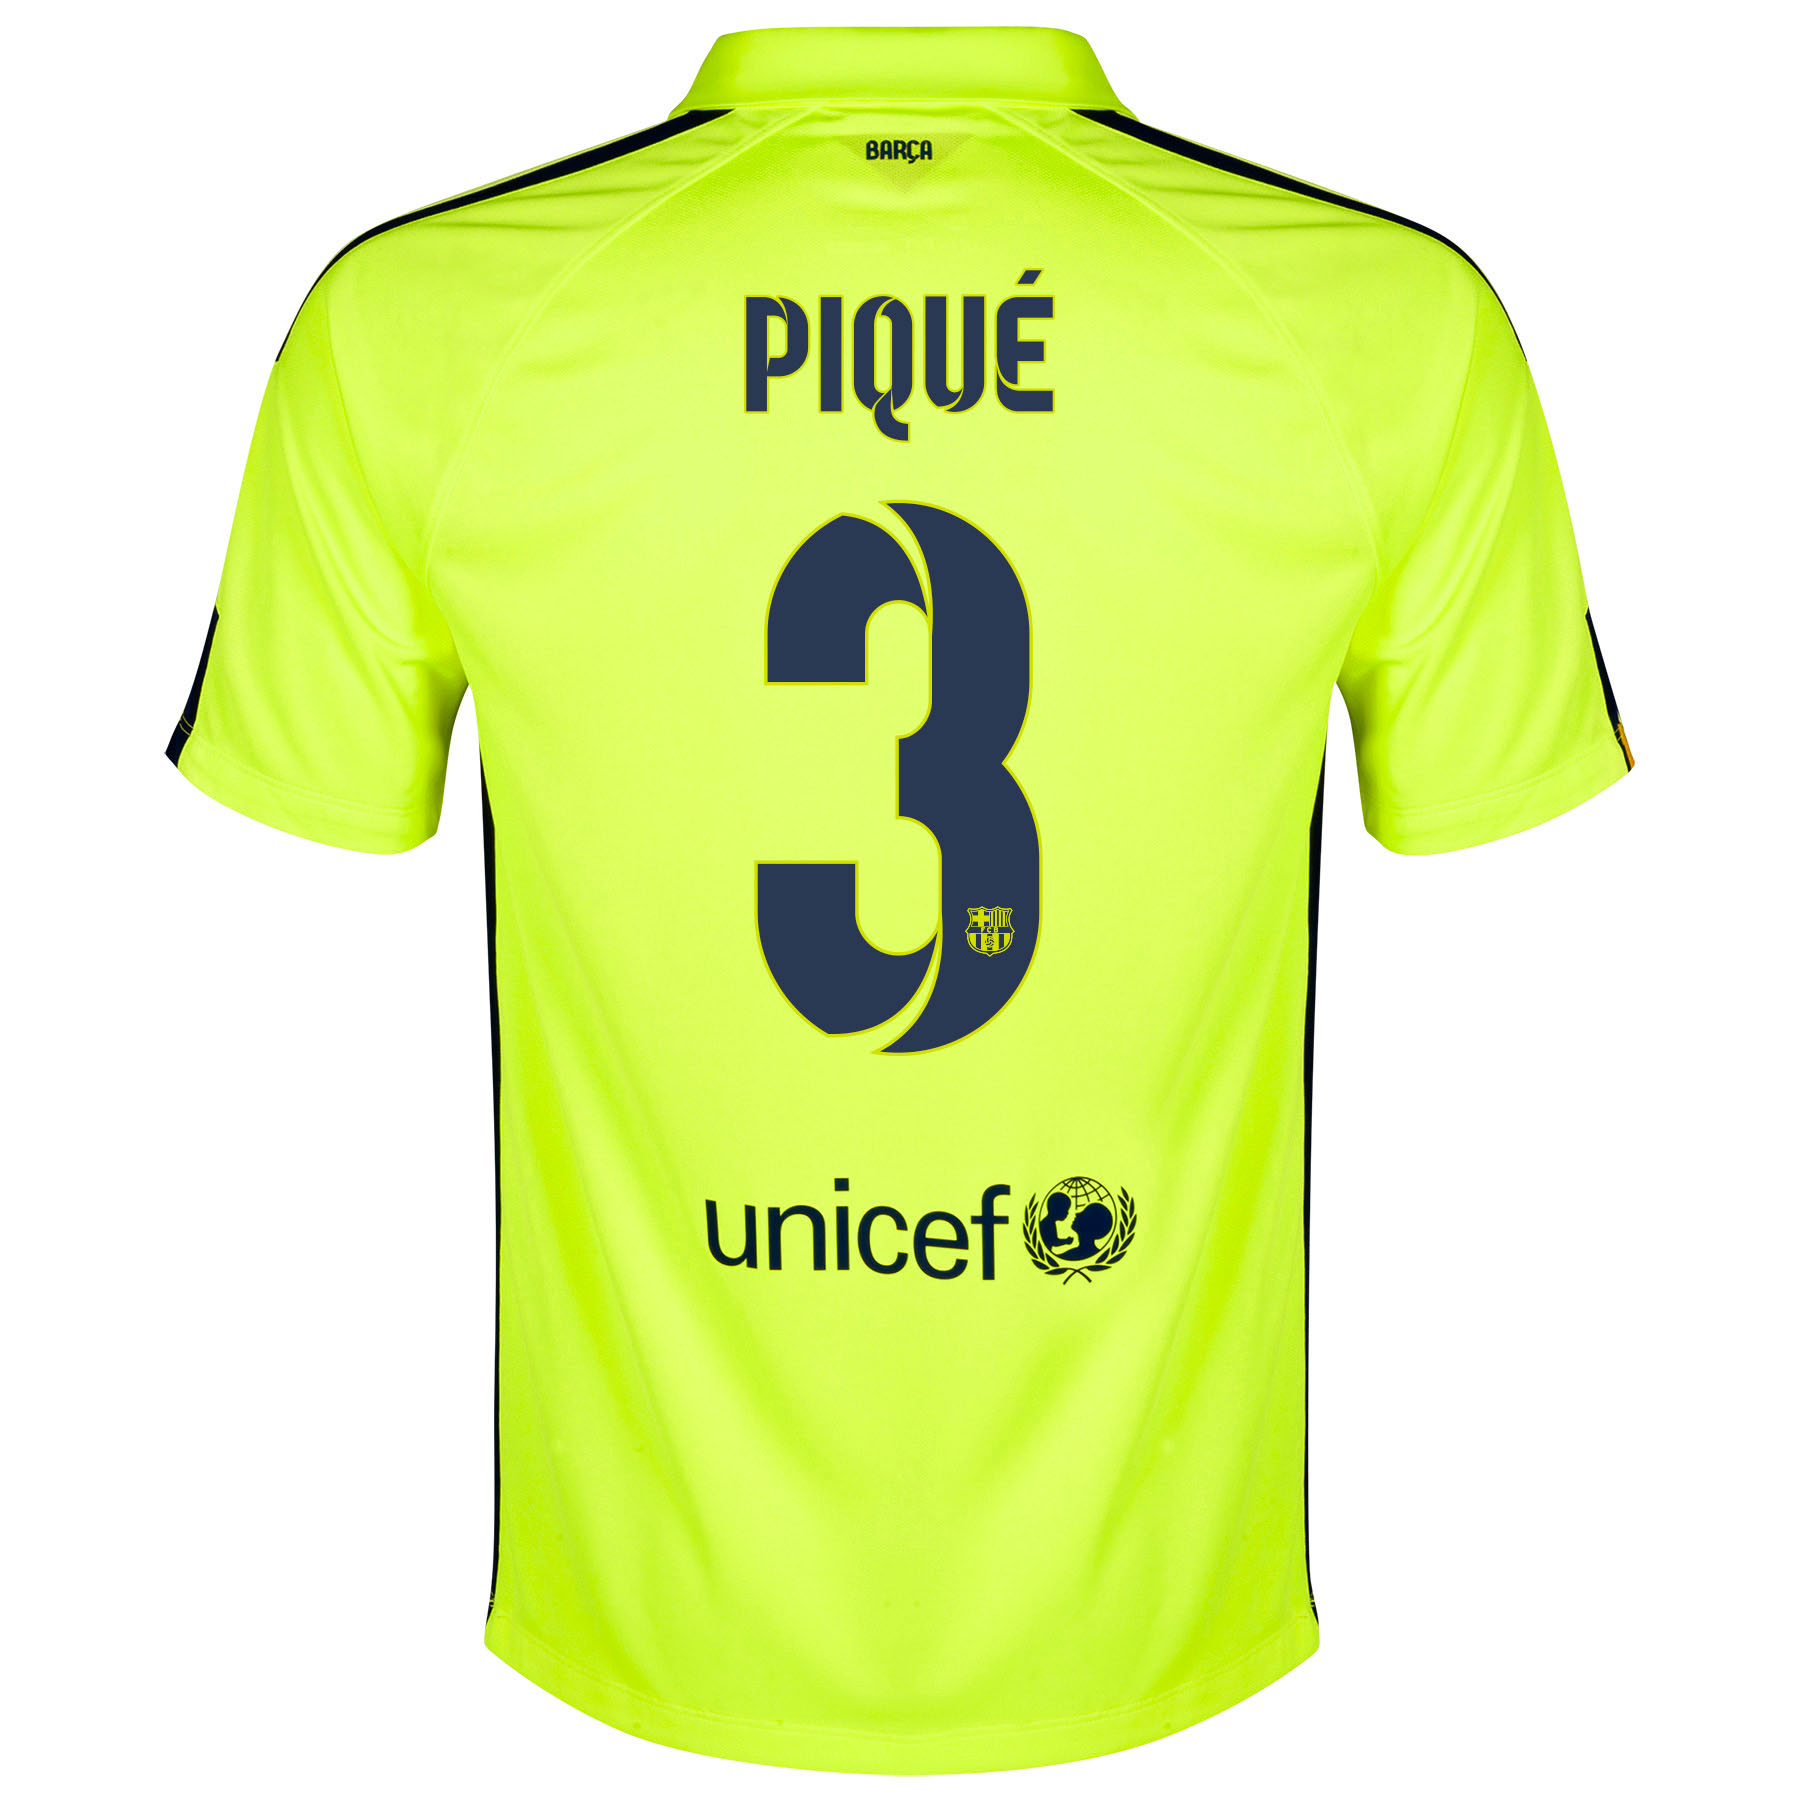 Barcelona Third Shirt 2014/15 - Kids Yellow with Pique 3 printing